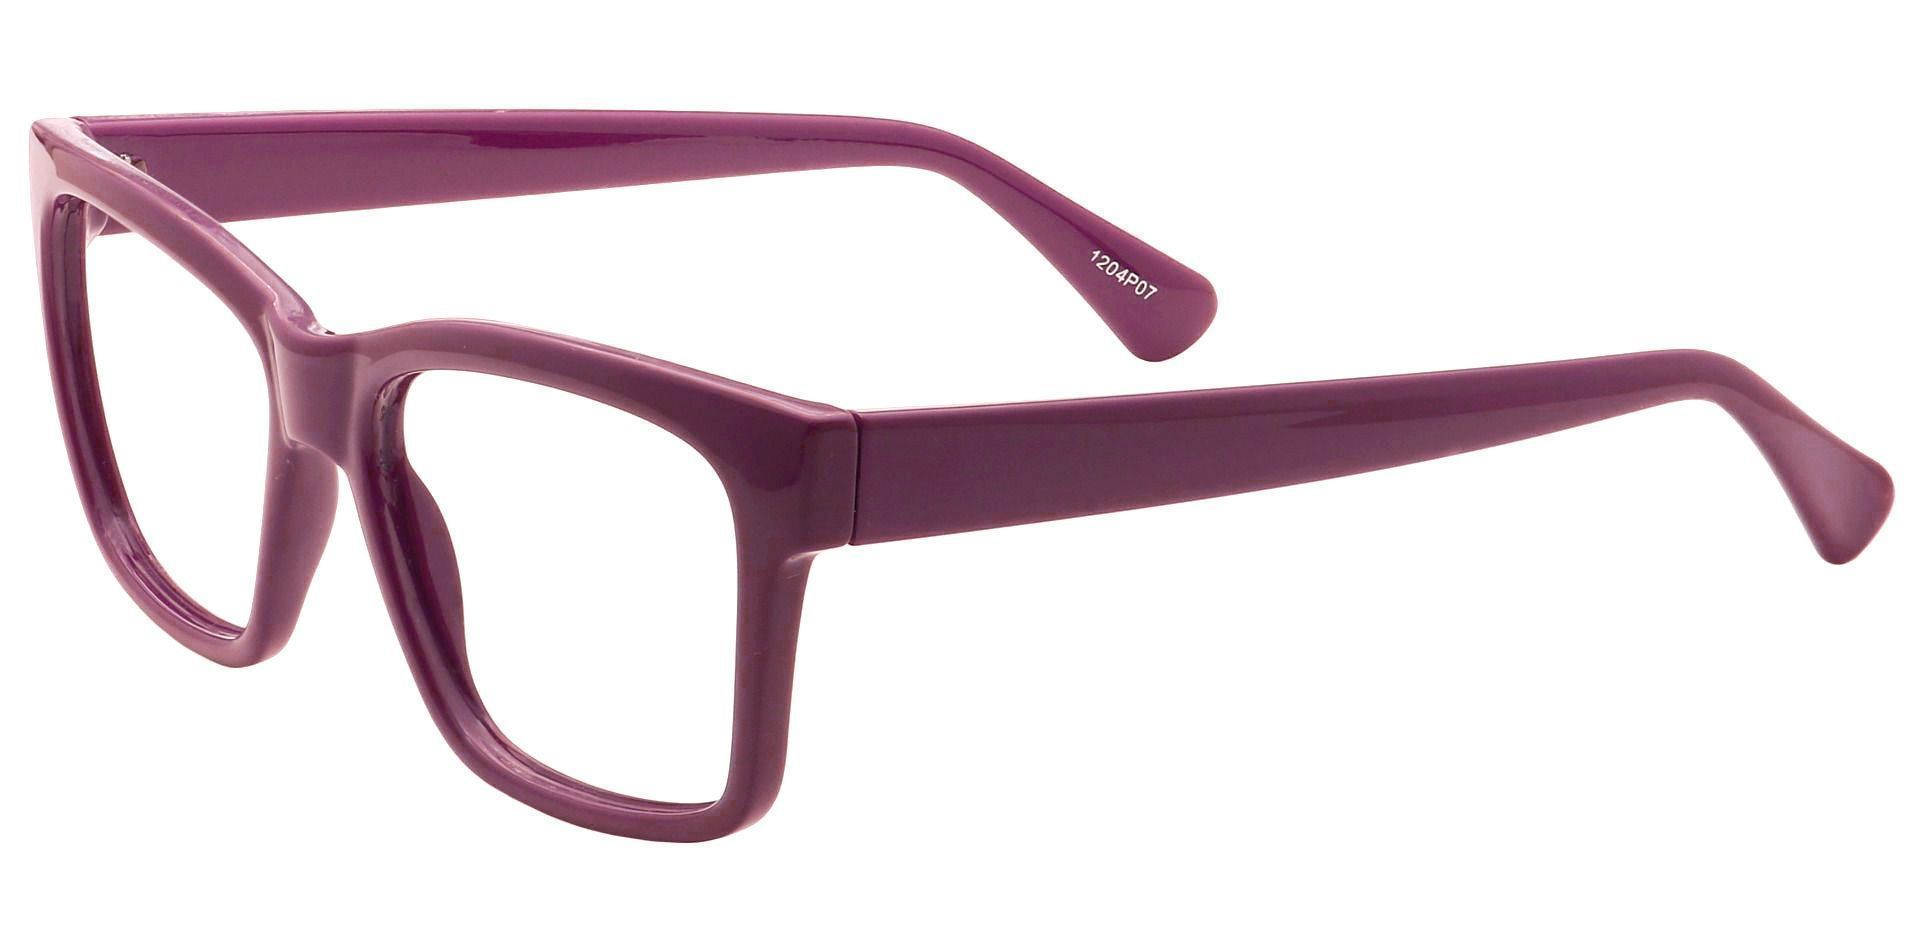 Brinley Square Lined Bifocal Glasses - Purple